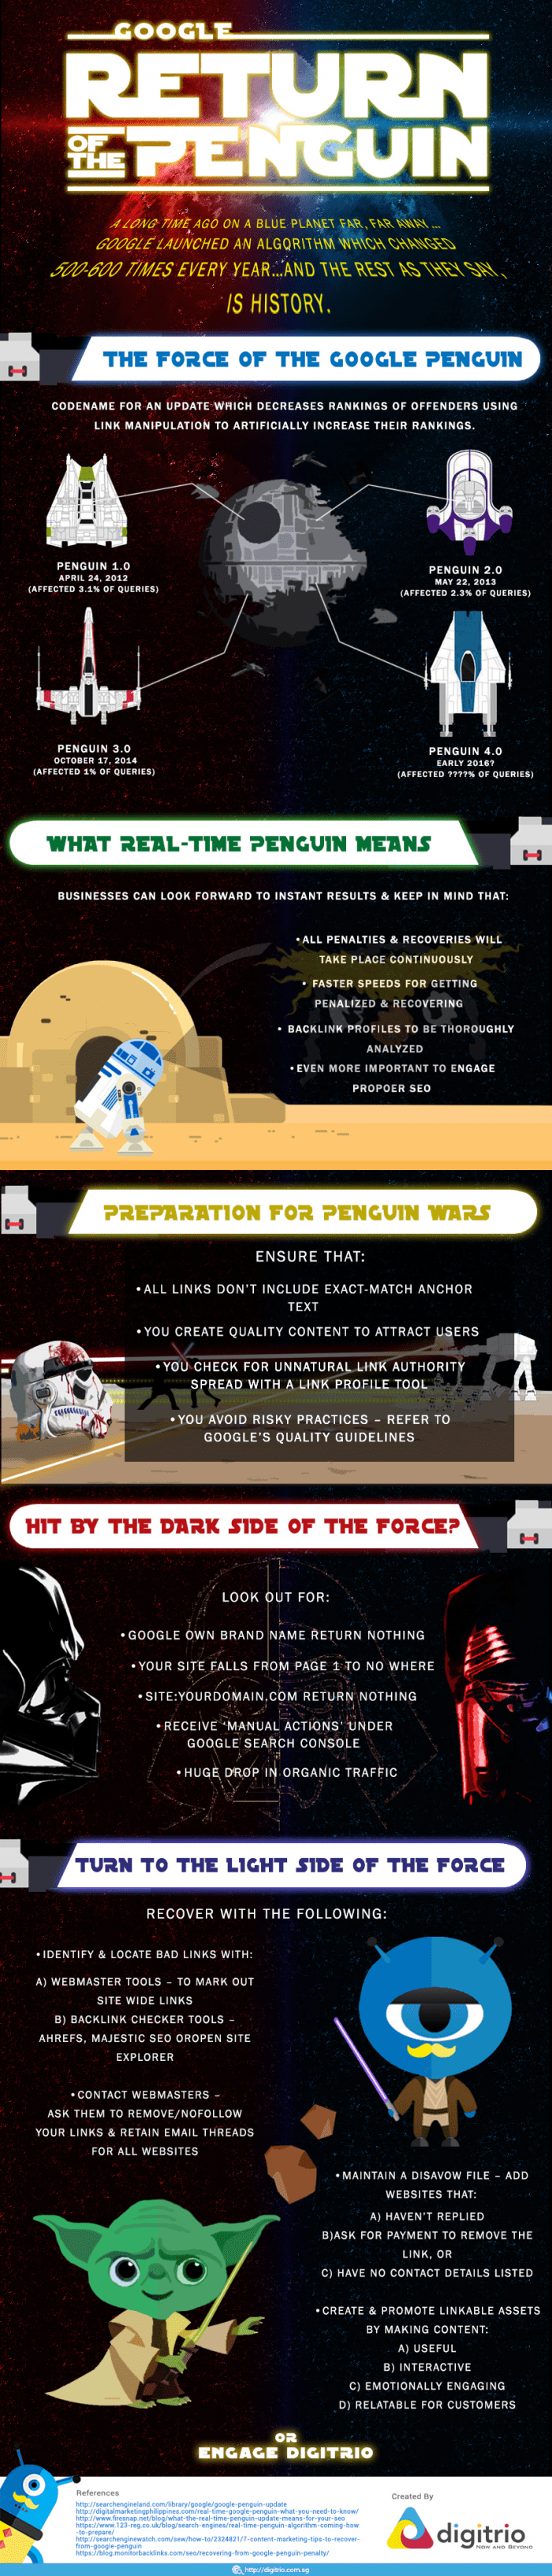 Google's Return of the Penguin Infographic